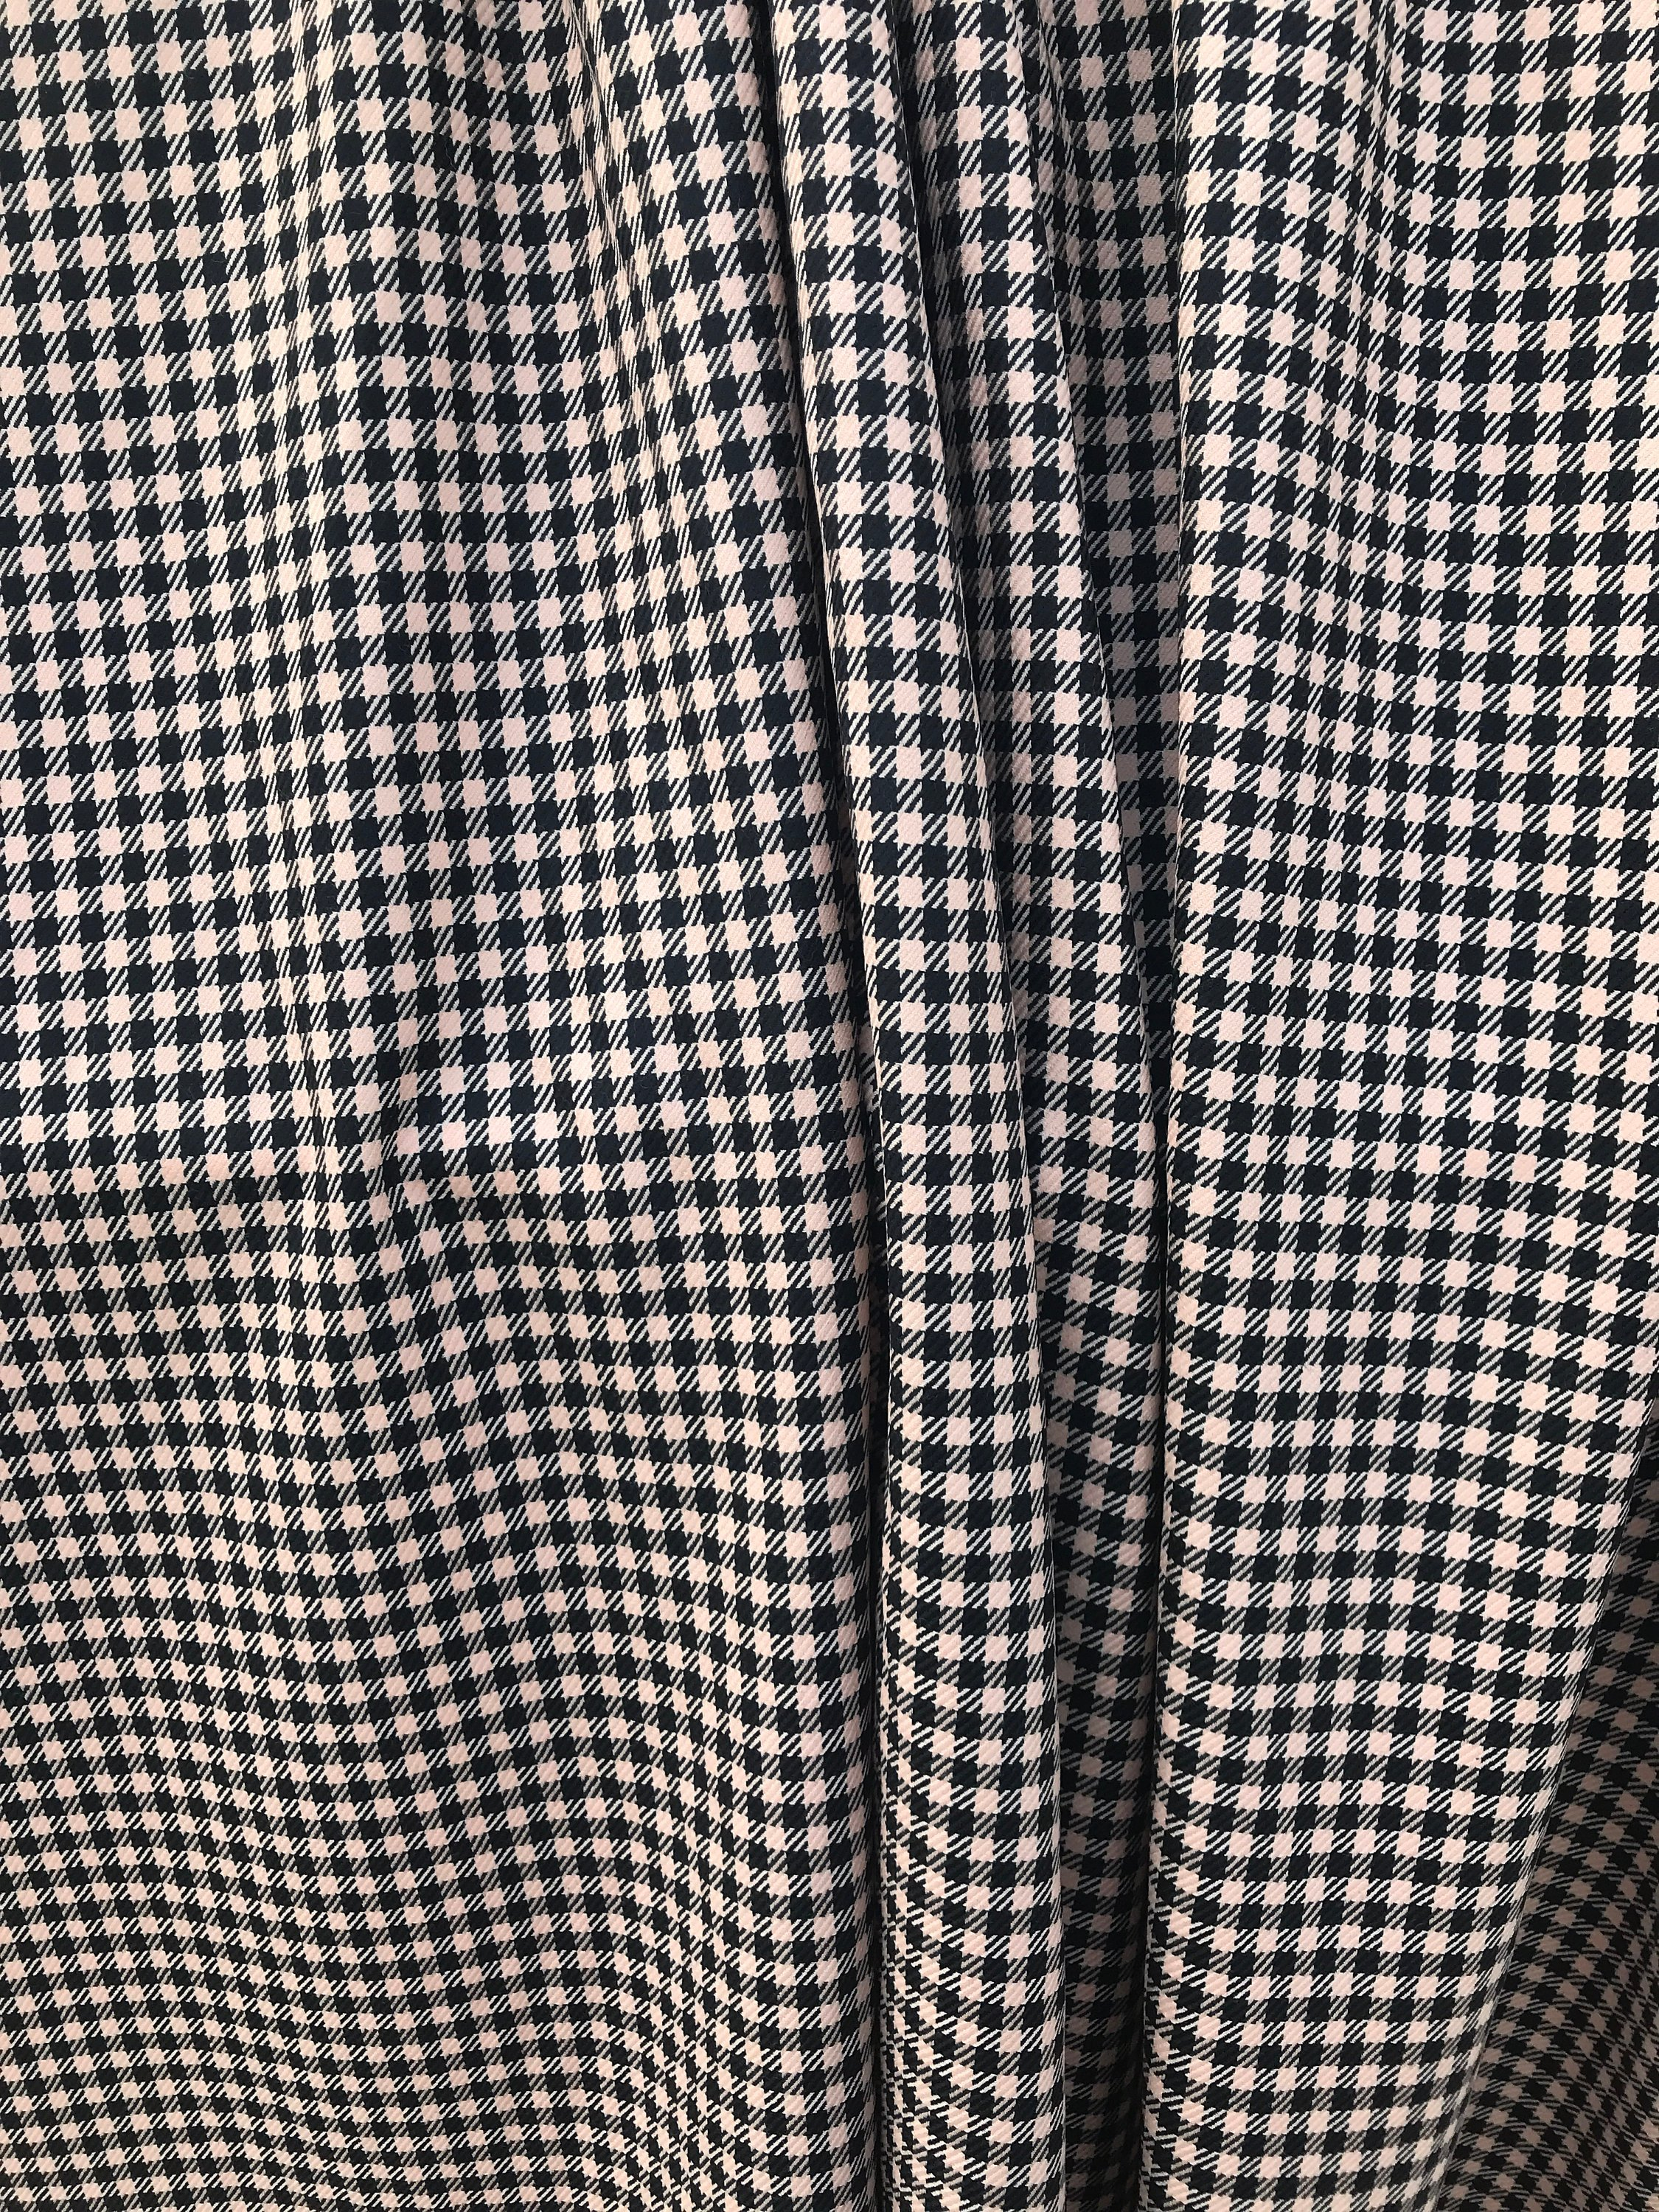 baby pink on black wool check fabric , pure wool made in Italy  suiting skirt pants coat fabric